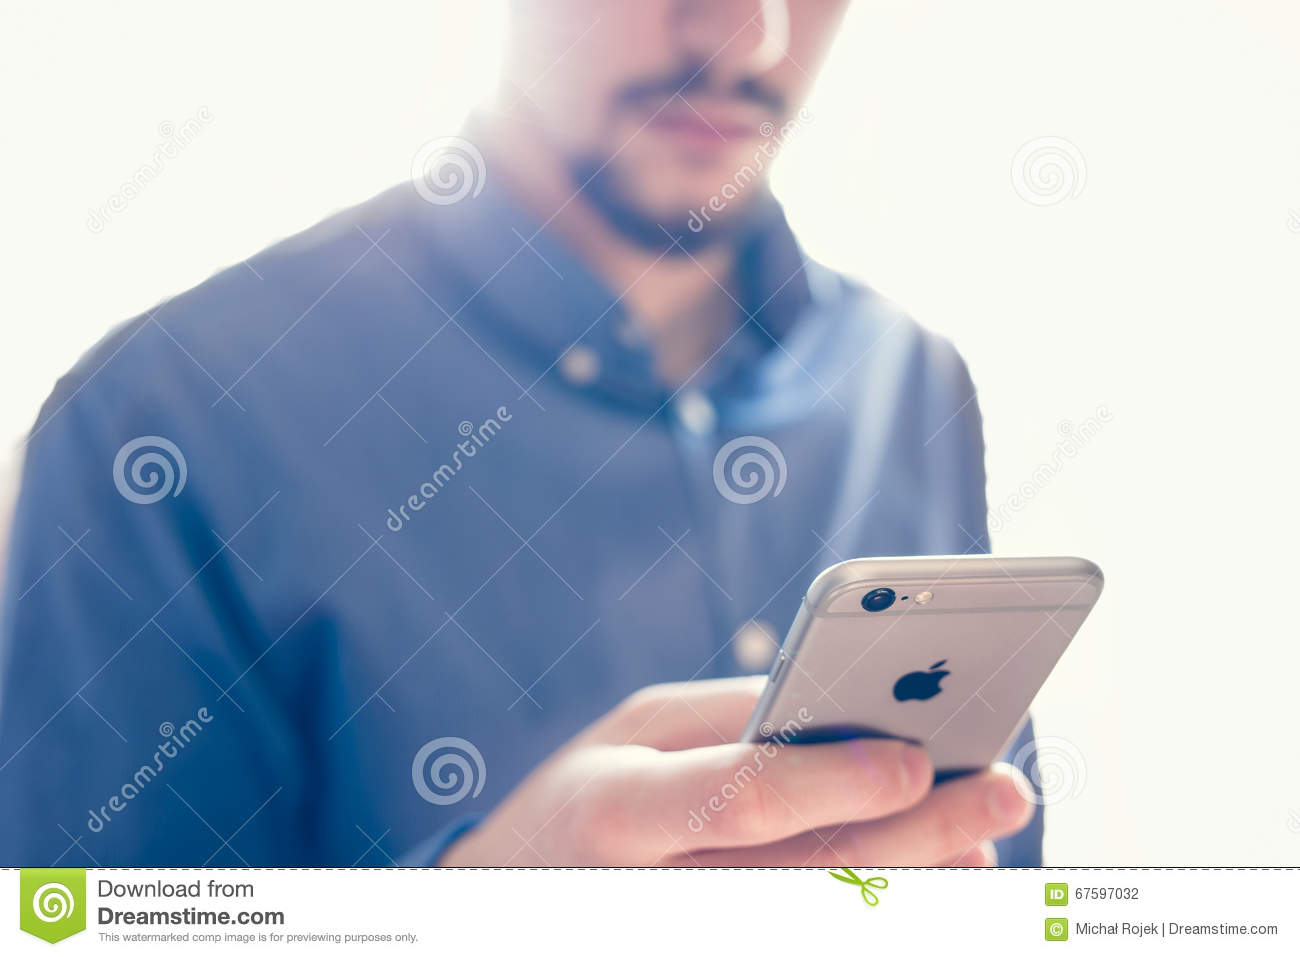 apple iphone customer service businessman holding with news app on the screen 13466